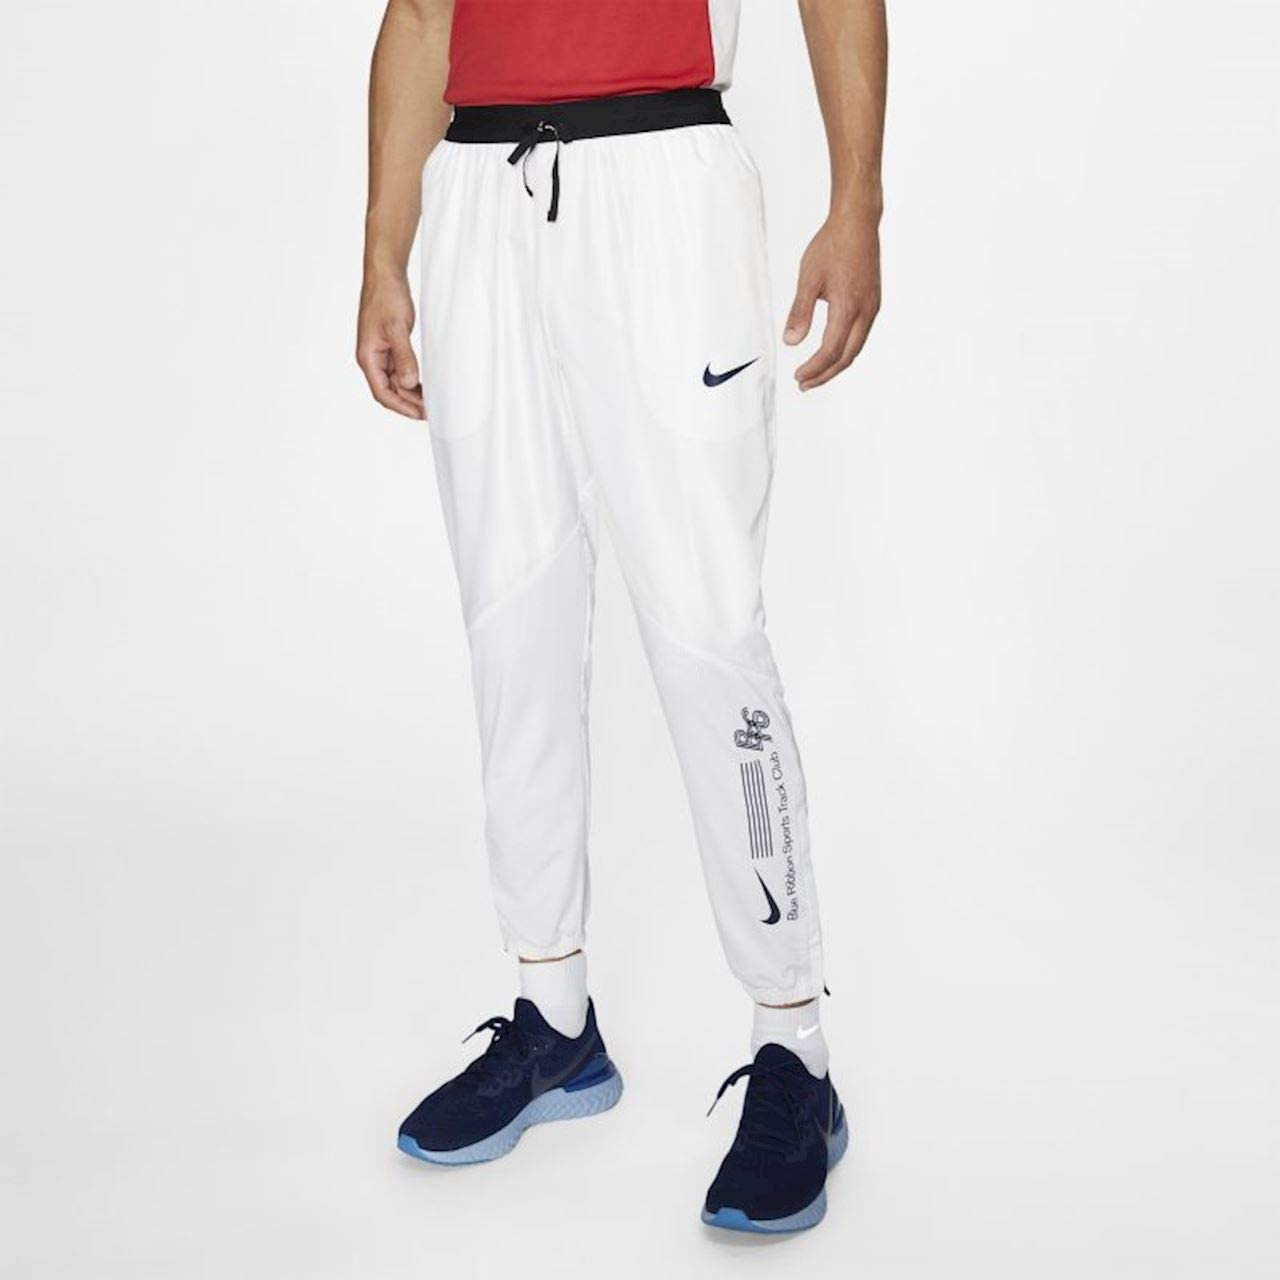 Maryanne Jones Factibilidad Abreviar  Nike U NK Track Pant BRS Pantalon Mixte Adulte, Blanc/Bleu  (White/White/White/Blue Void), M: Amazon.fr: Sports et Loisirs